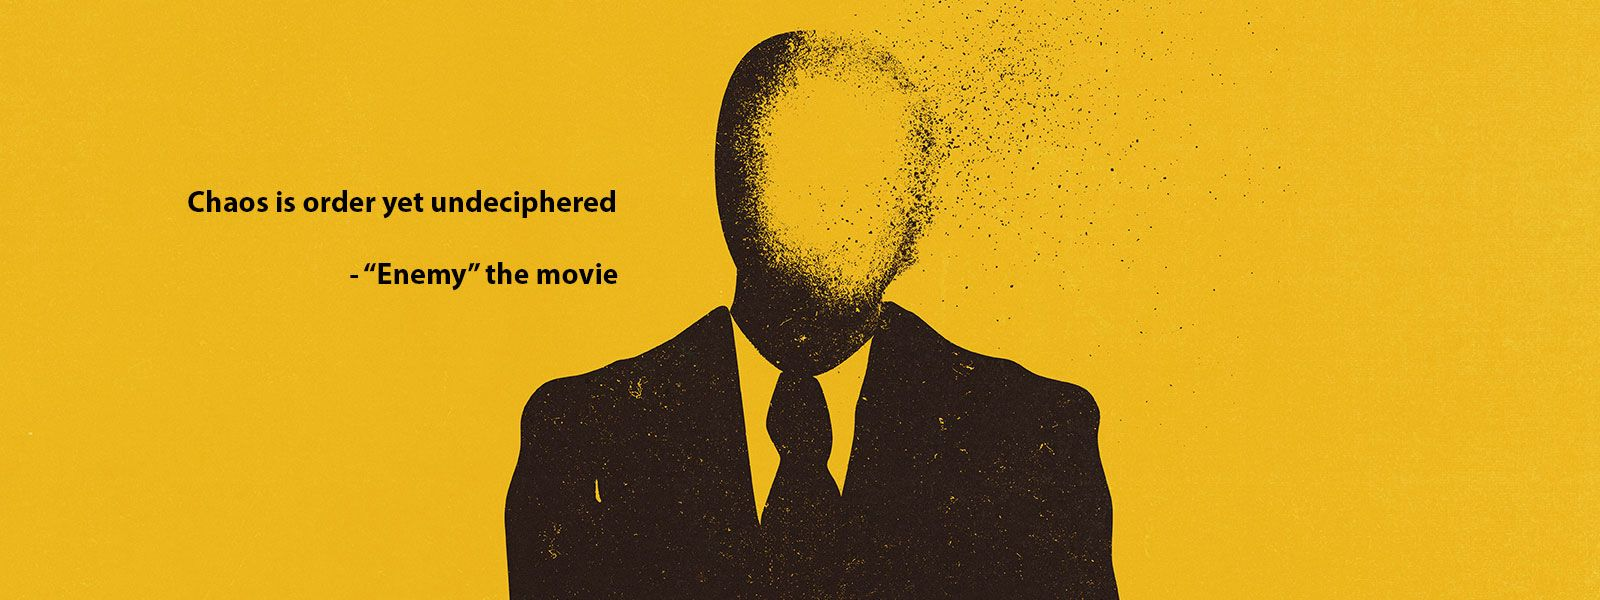 Chaos is order yet undeciphered enemy the movie